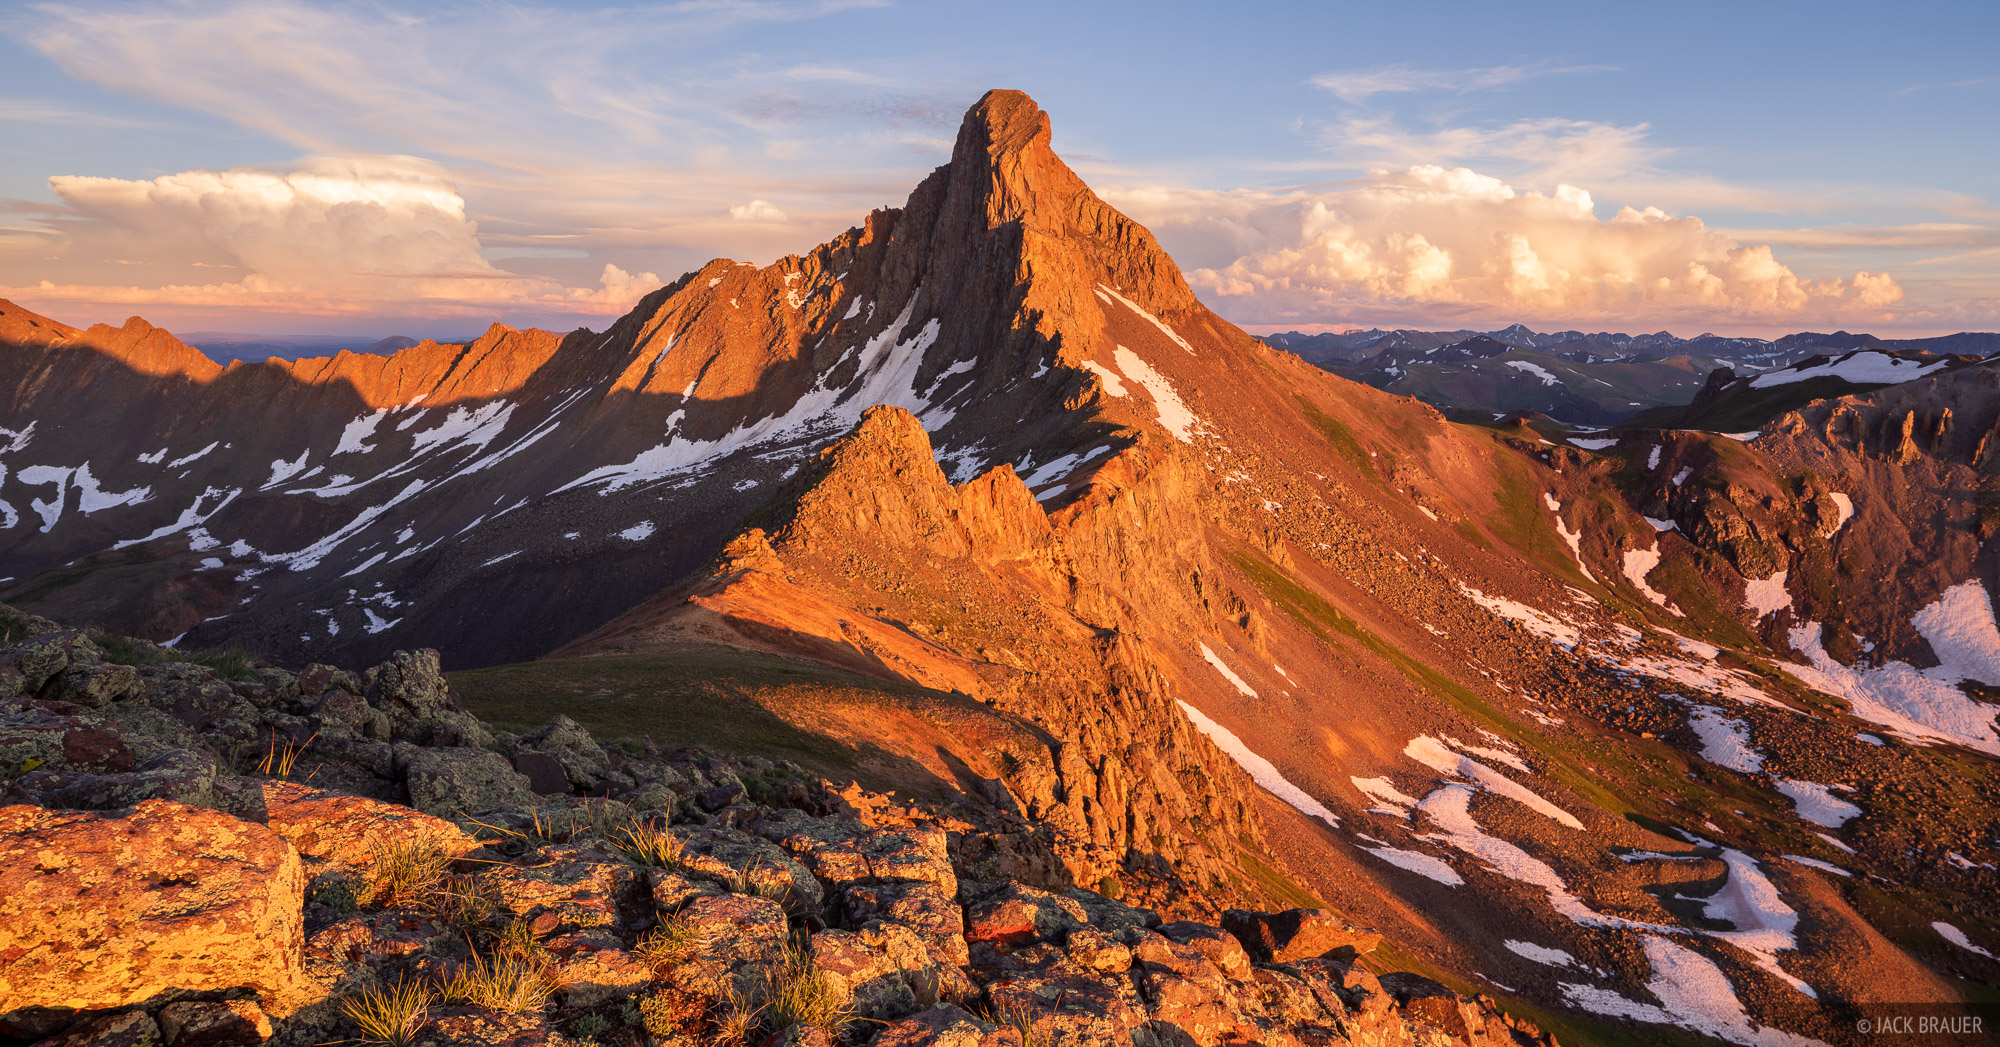 Colorado, San Juan Mountains, Uncompahgre Wilderness, Wetterhorn Peak, photo